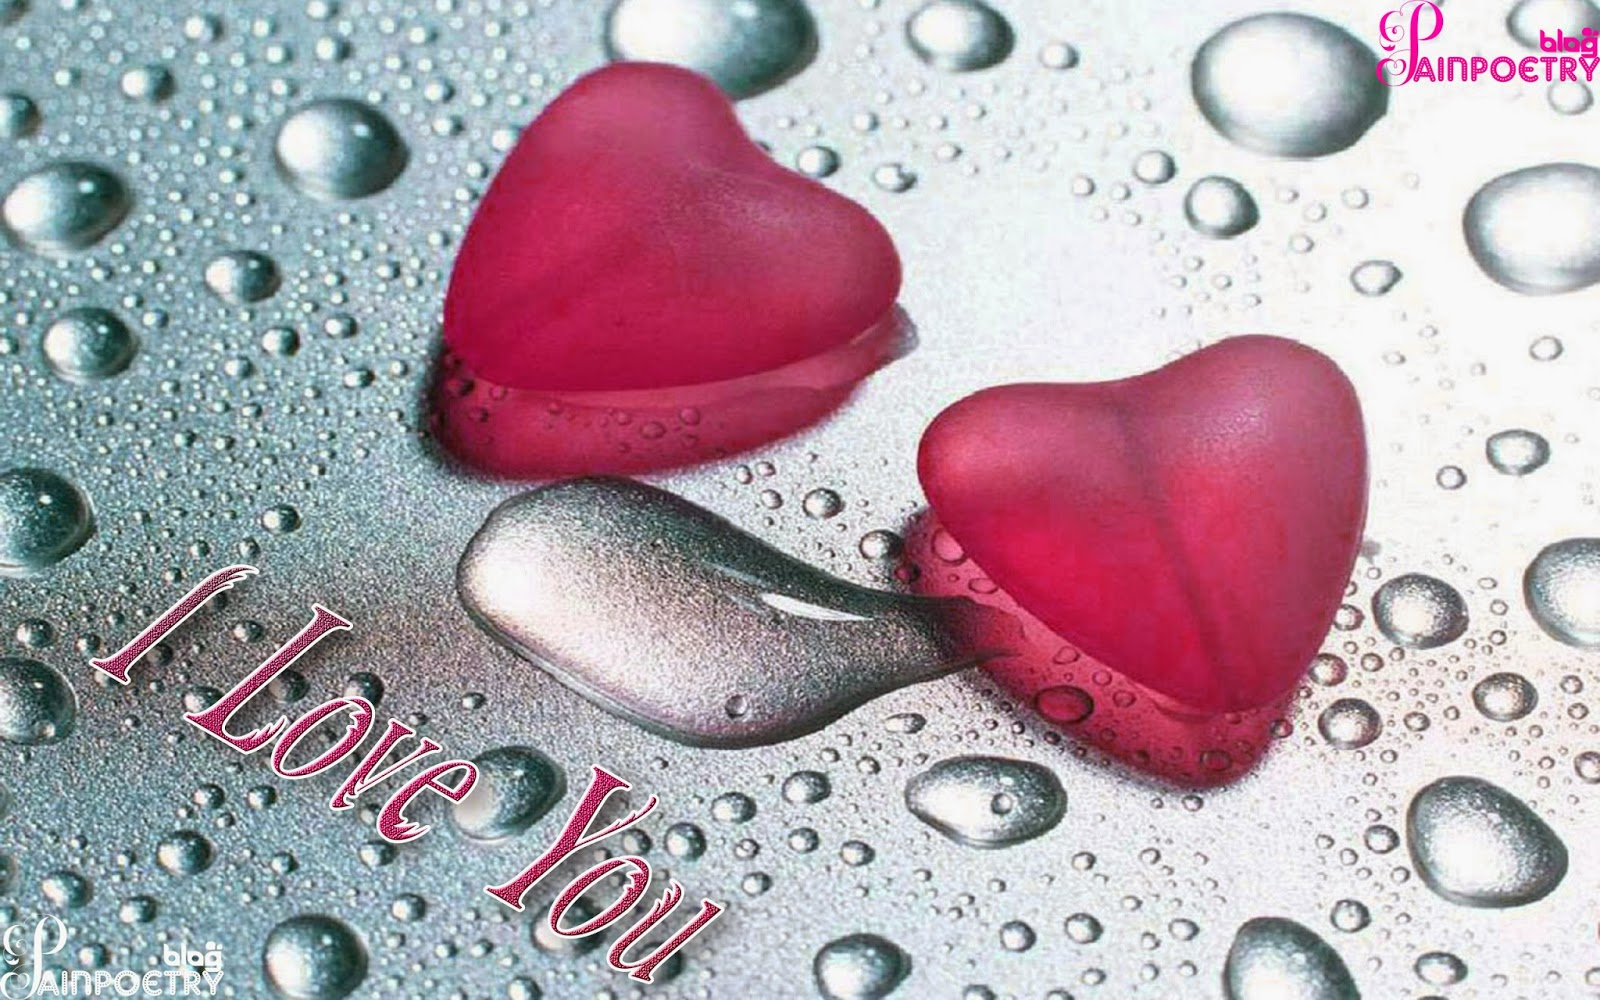 Love-Wishes-Image-Near-The-Heart-On-Land-Hd